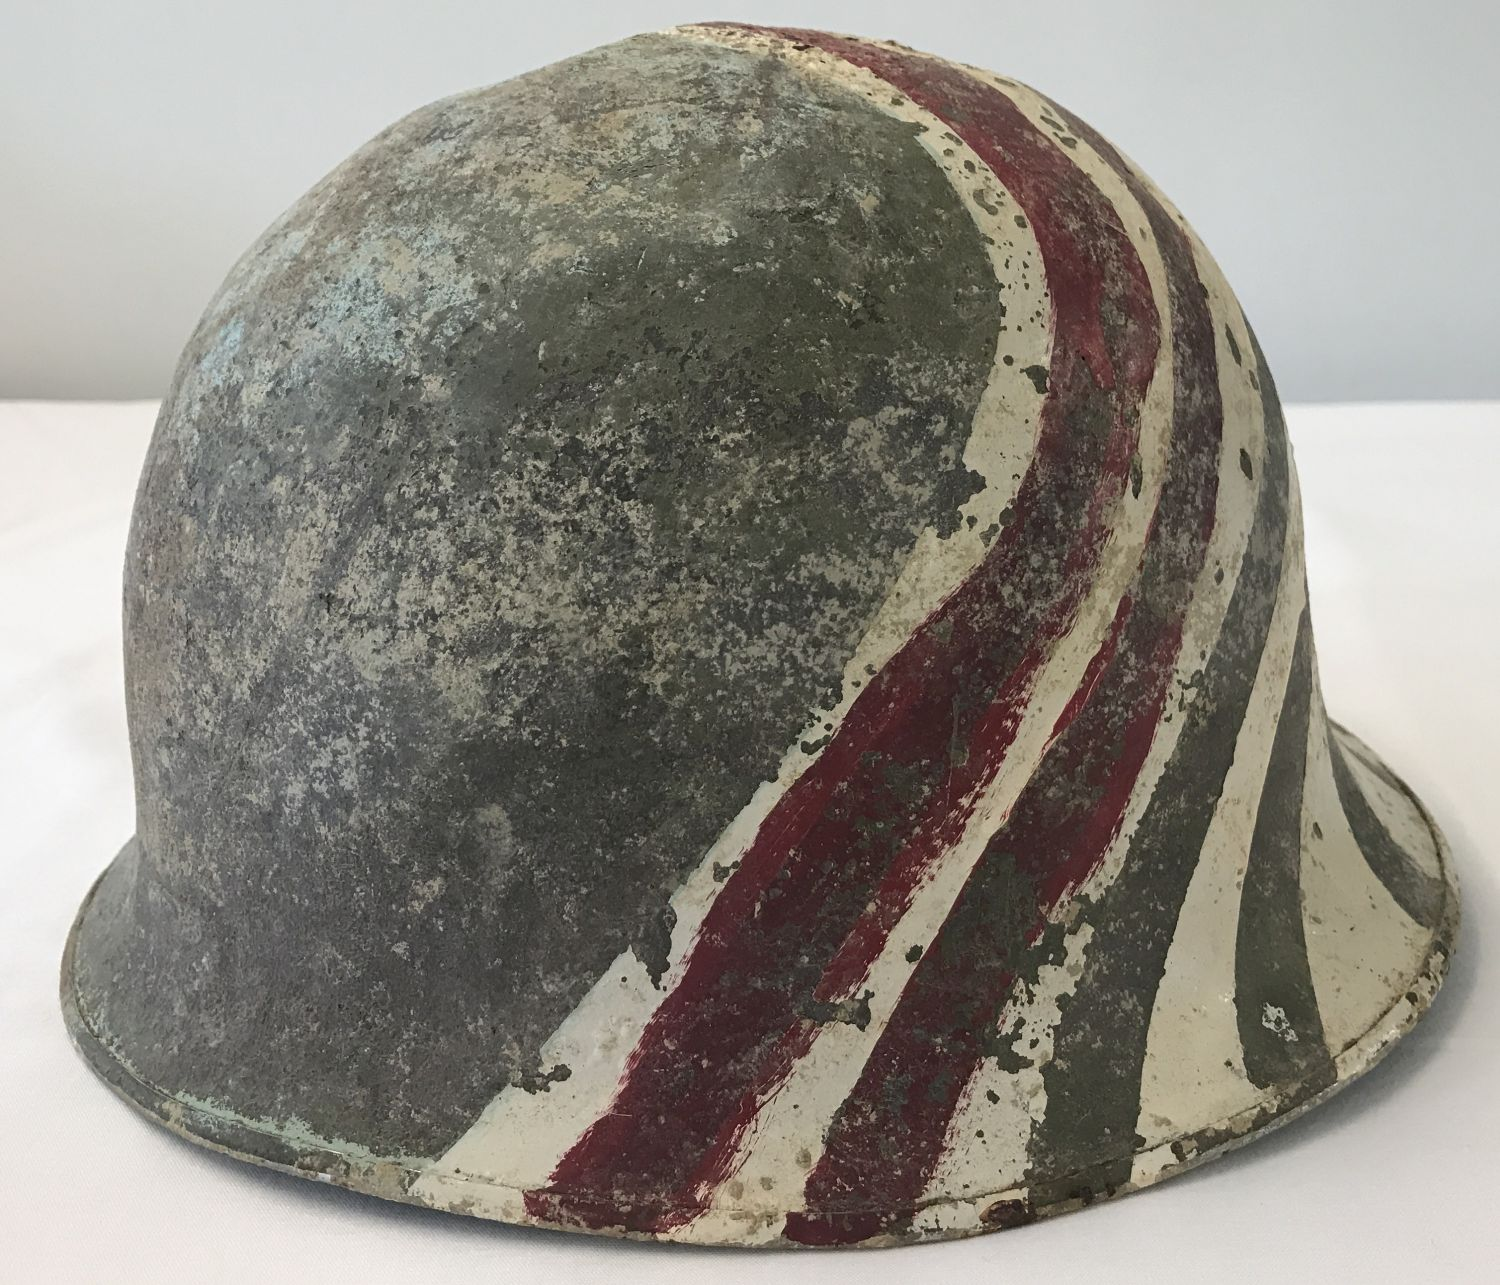 A French M51 OTAN (NATO) steel helmet with hand painted markings.